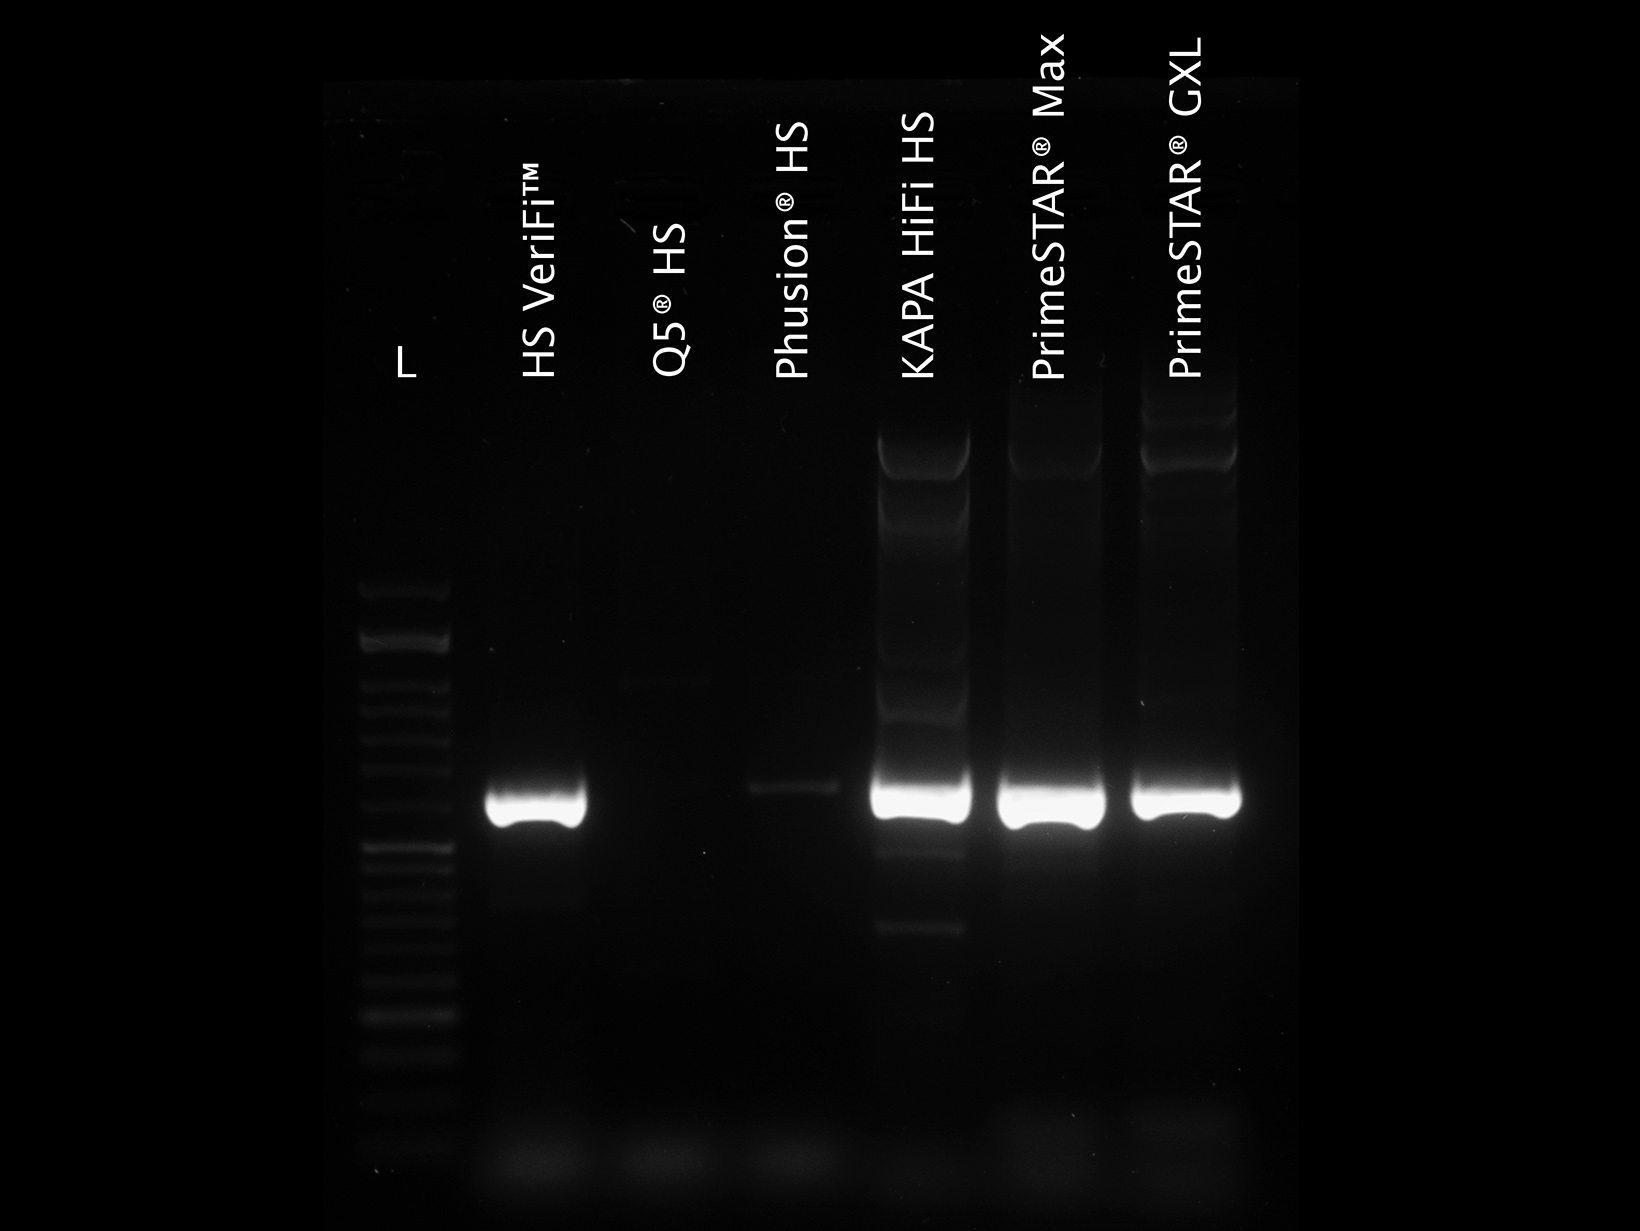 Gel image showing comparison of PCRBIO HS VeriFi Mix and leading competitors amplifying a GC-rich template